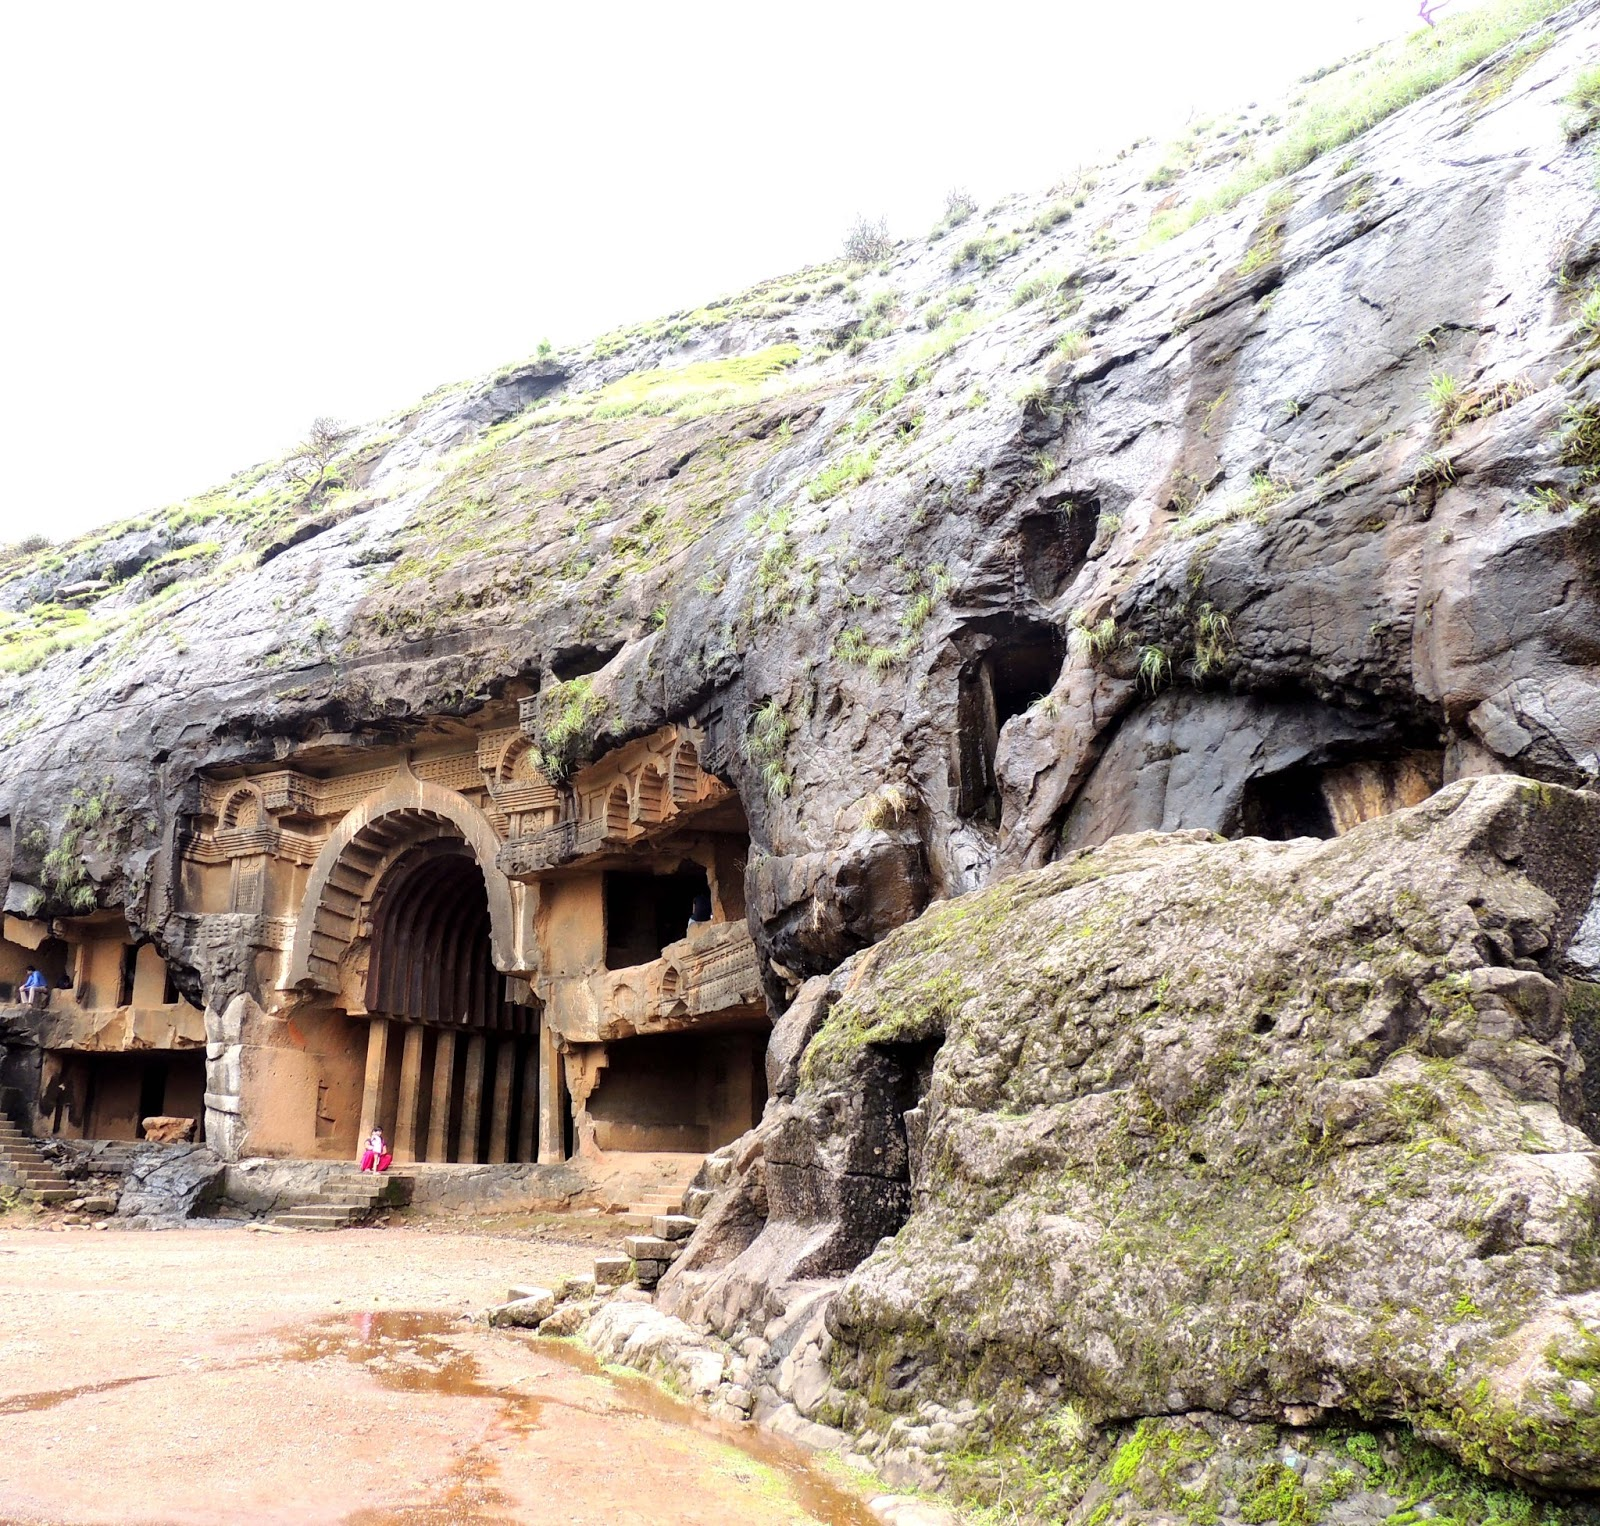 rock cave buddhist singles Aluvihara rock cave temple: interesting buddhist site to visit - see 224 traveler reviews, 221 candid photos, and great deals for matale, sri lanka, at tripadvisor.